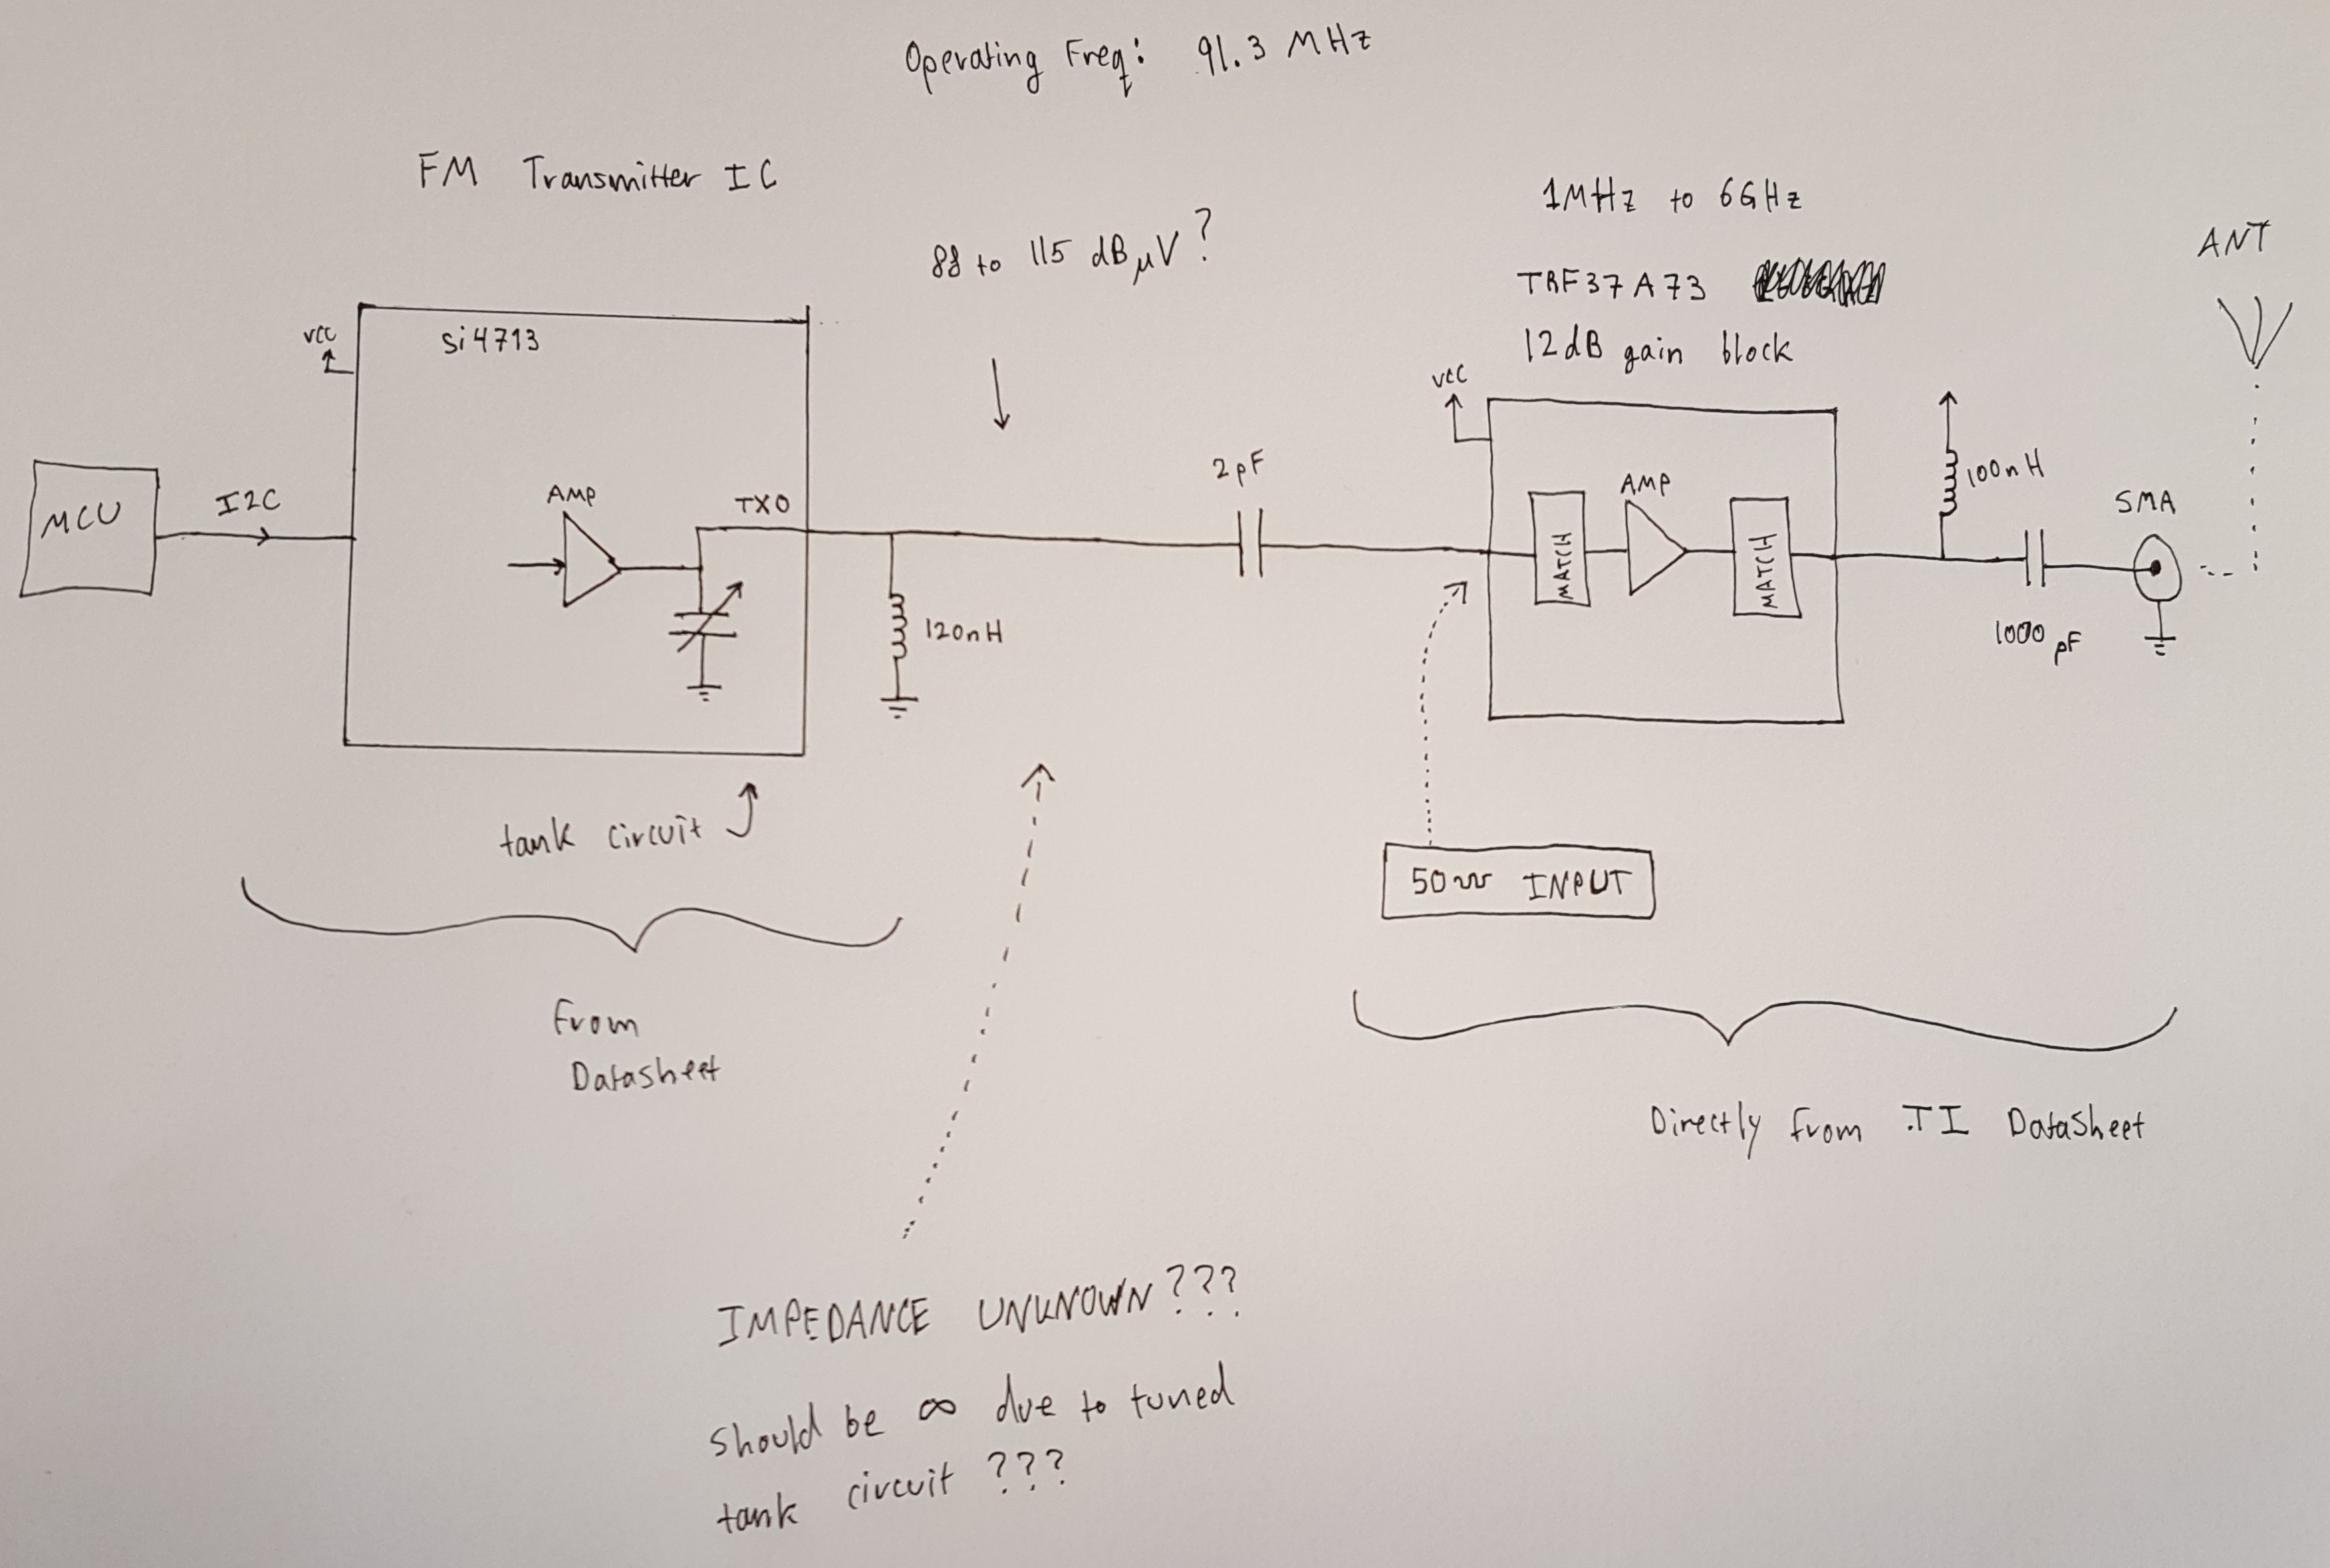 Help Connecting Rf Amplifier To Output Of Si4713 Fm Transmitter Ic Circuit Diagram Provide The Optimum Level And Frequency Response For Supported Transmit Frequencies Users Are Responsible Adjusting Their Systems